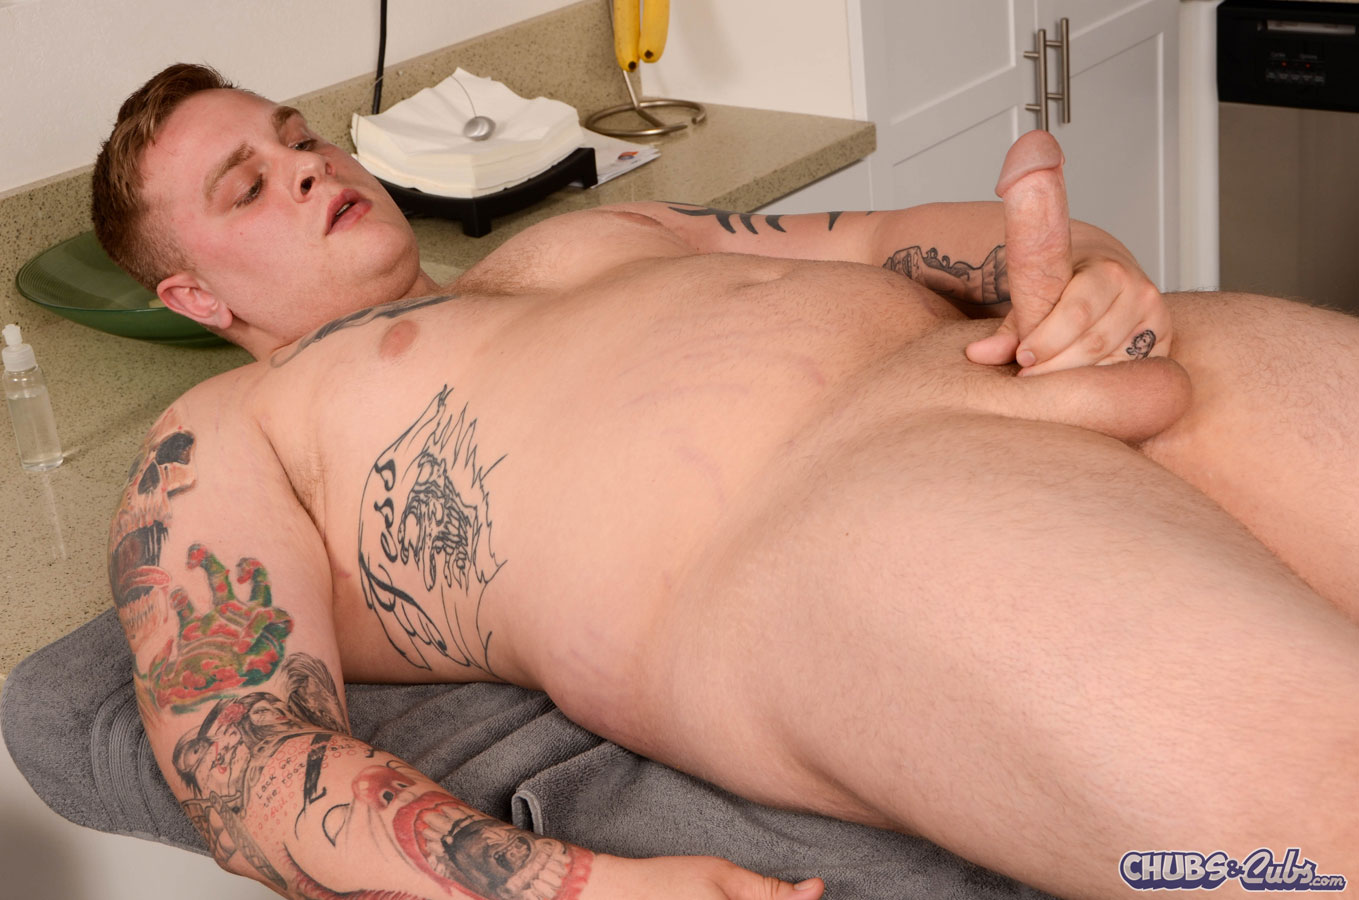 image Chubby gay hot sex fat men and man farm